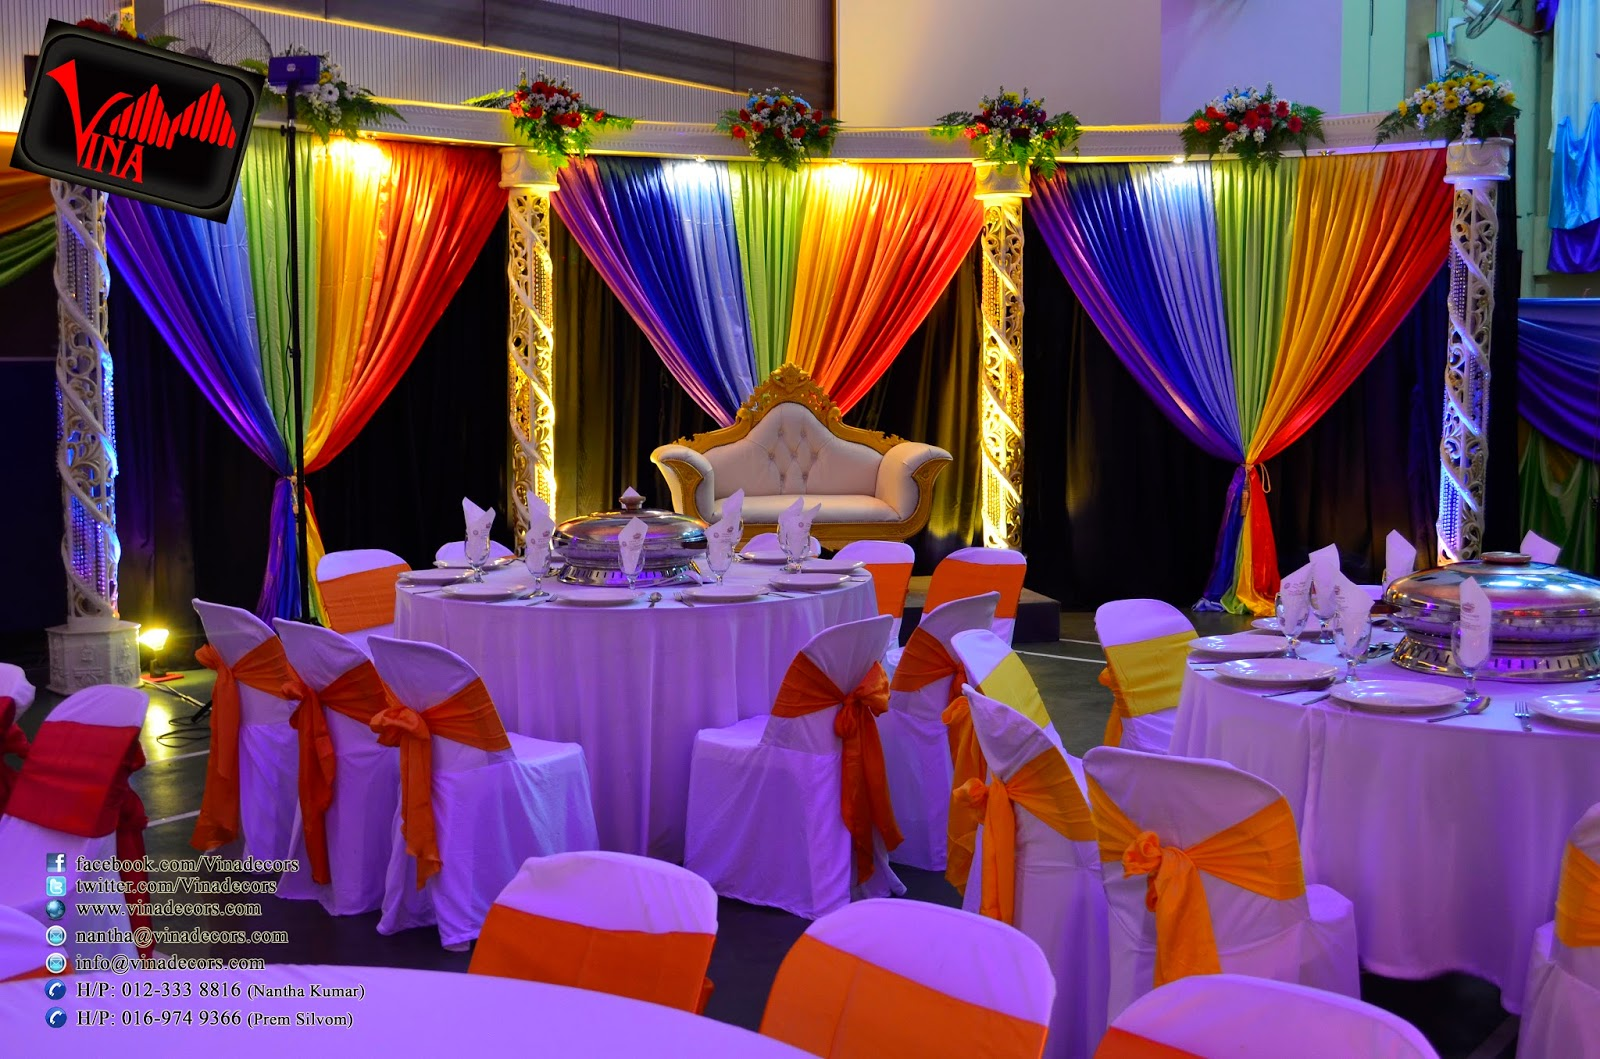 vina canopy decor rainbow color concept wedding dinner